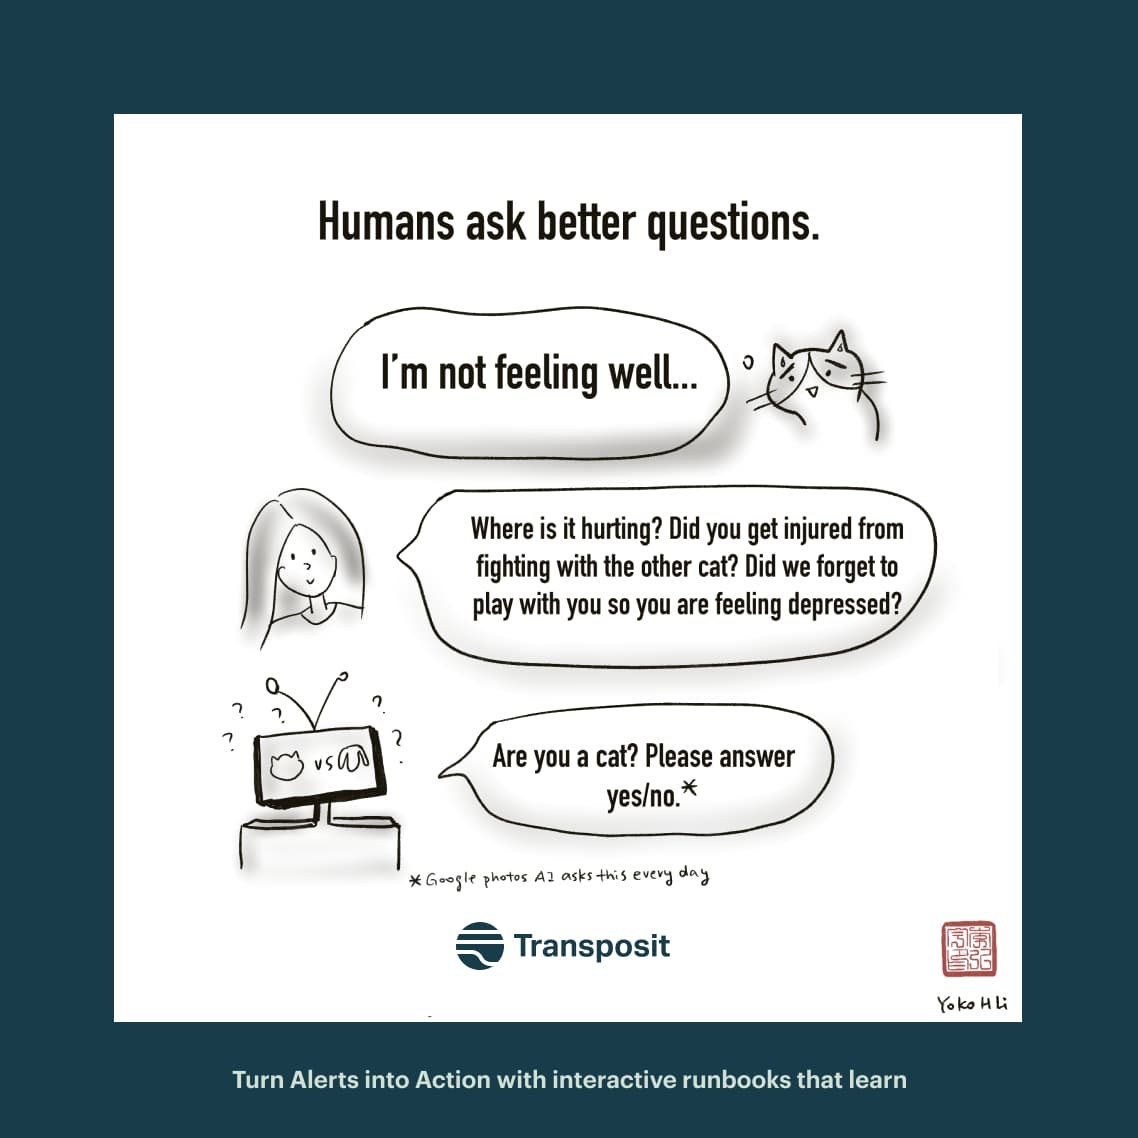 """Humans ask better questions. Cat: """"I'm not feeling well..."""" Human: """"Where is it hurting? Did you get injured from fighting with the other cat? Did we forget to play with you so you are feeling depressed?"""" Robot: """"Are you a cat? Please answer yes/no."""""""